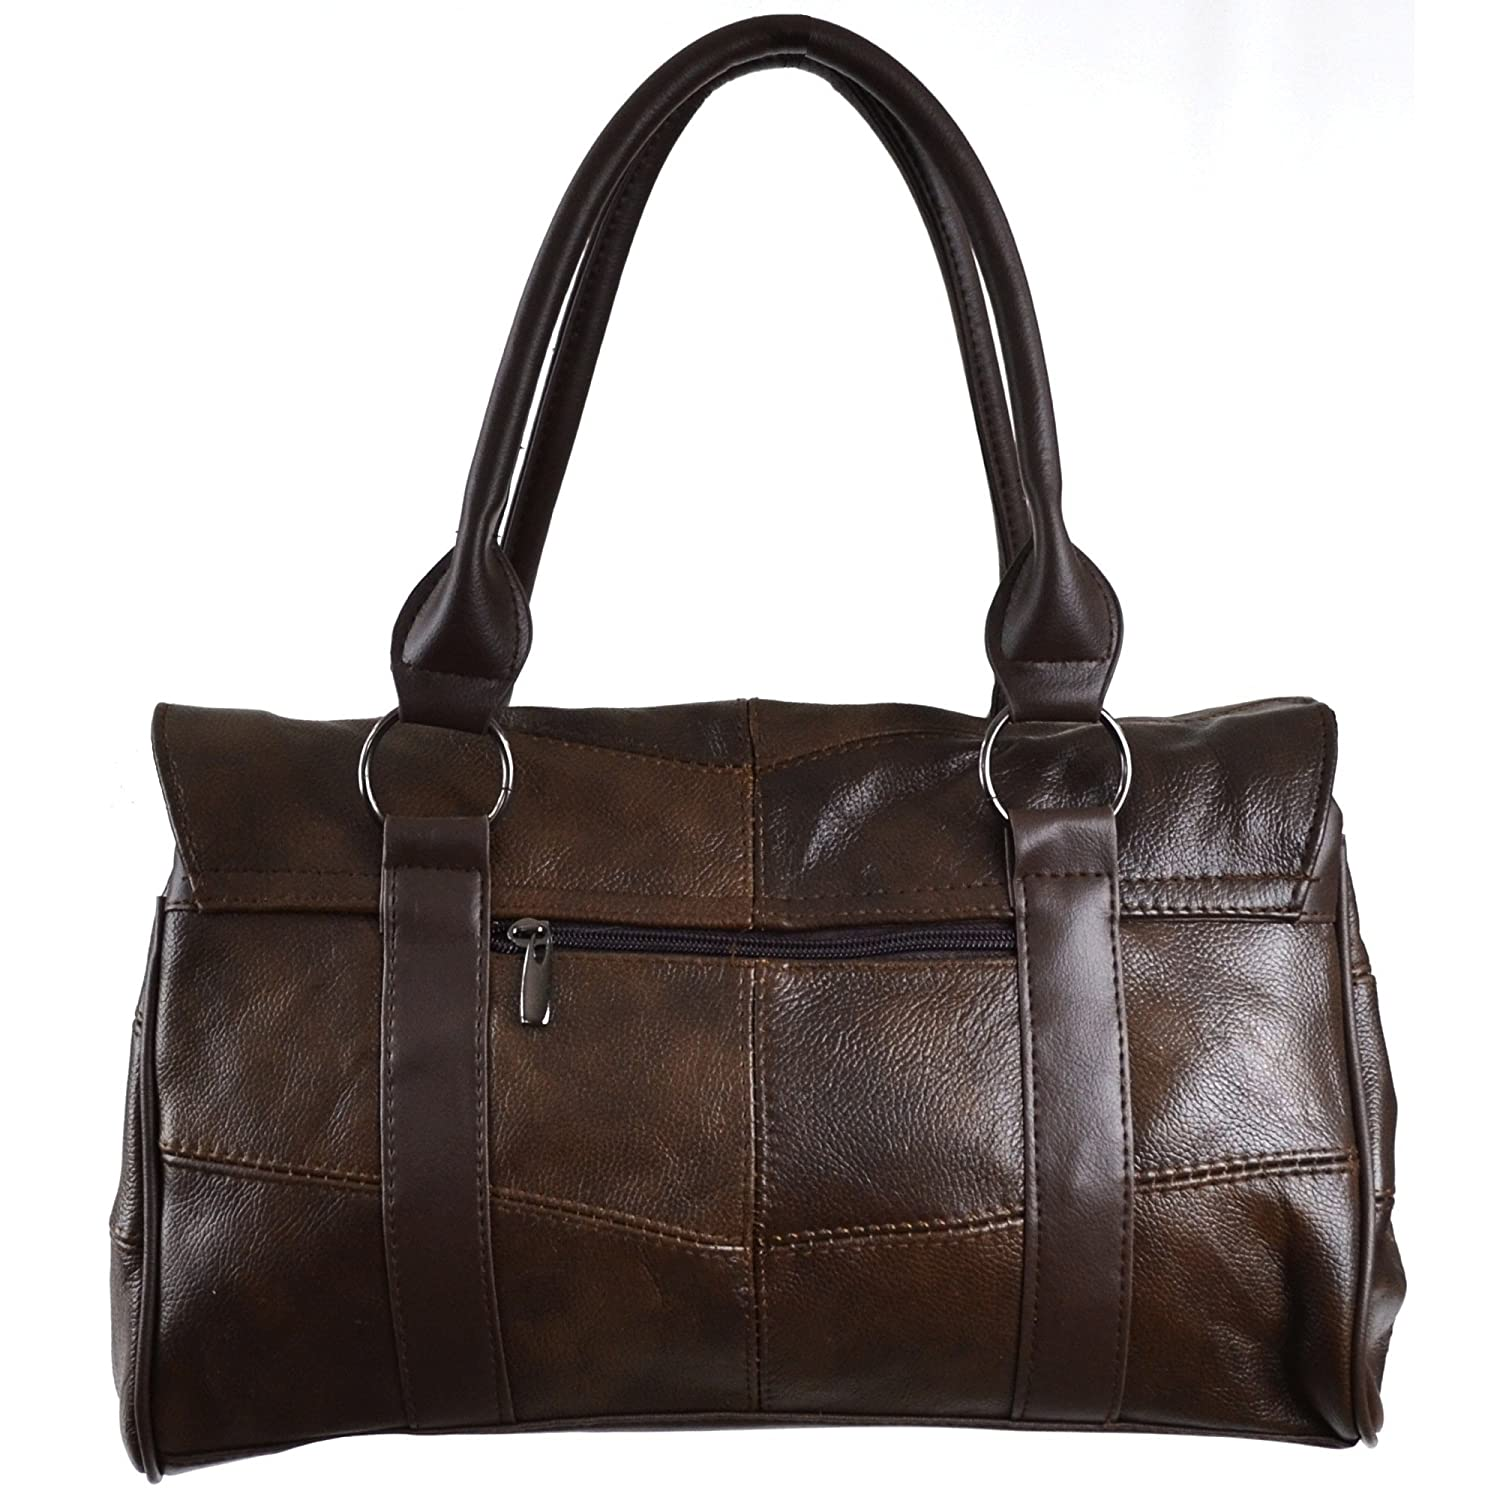 Black//Dark Brown//Fawn // Tan Ladies Leather Shoulder Bag//Handbag with Folder Over Flap and Magentic Clasp.